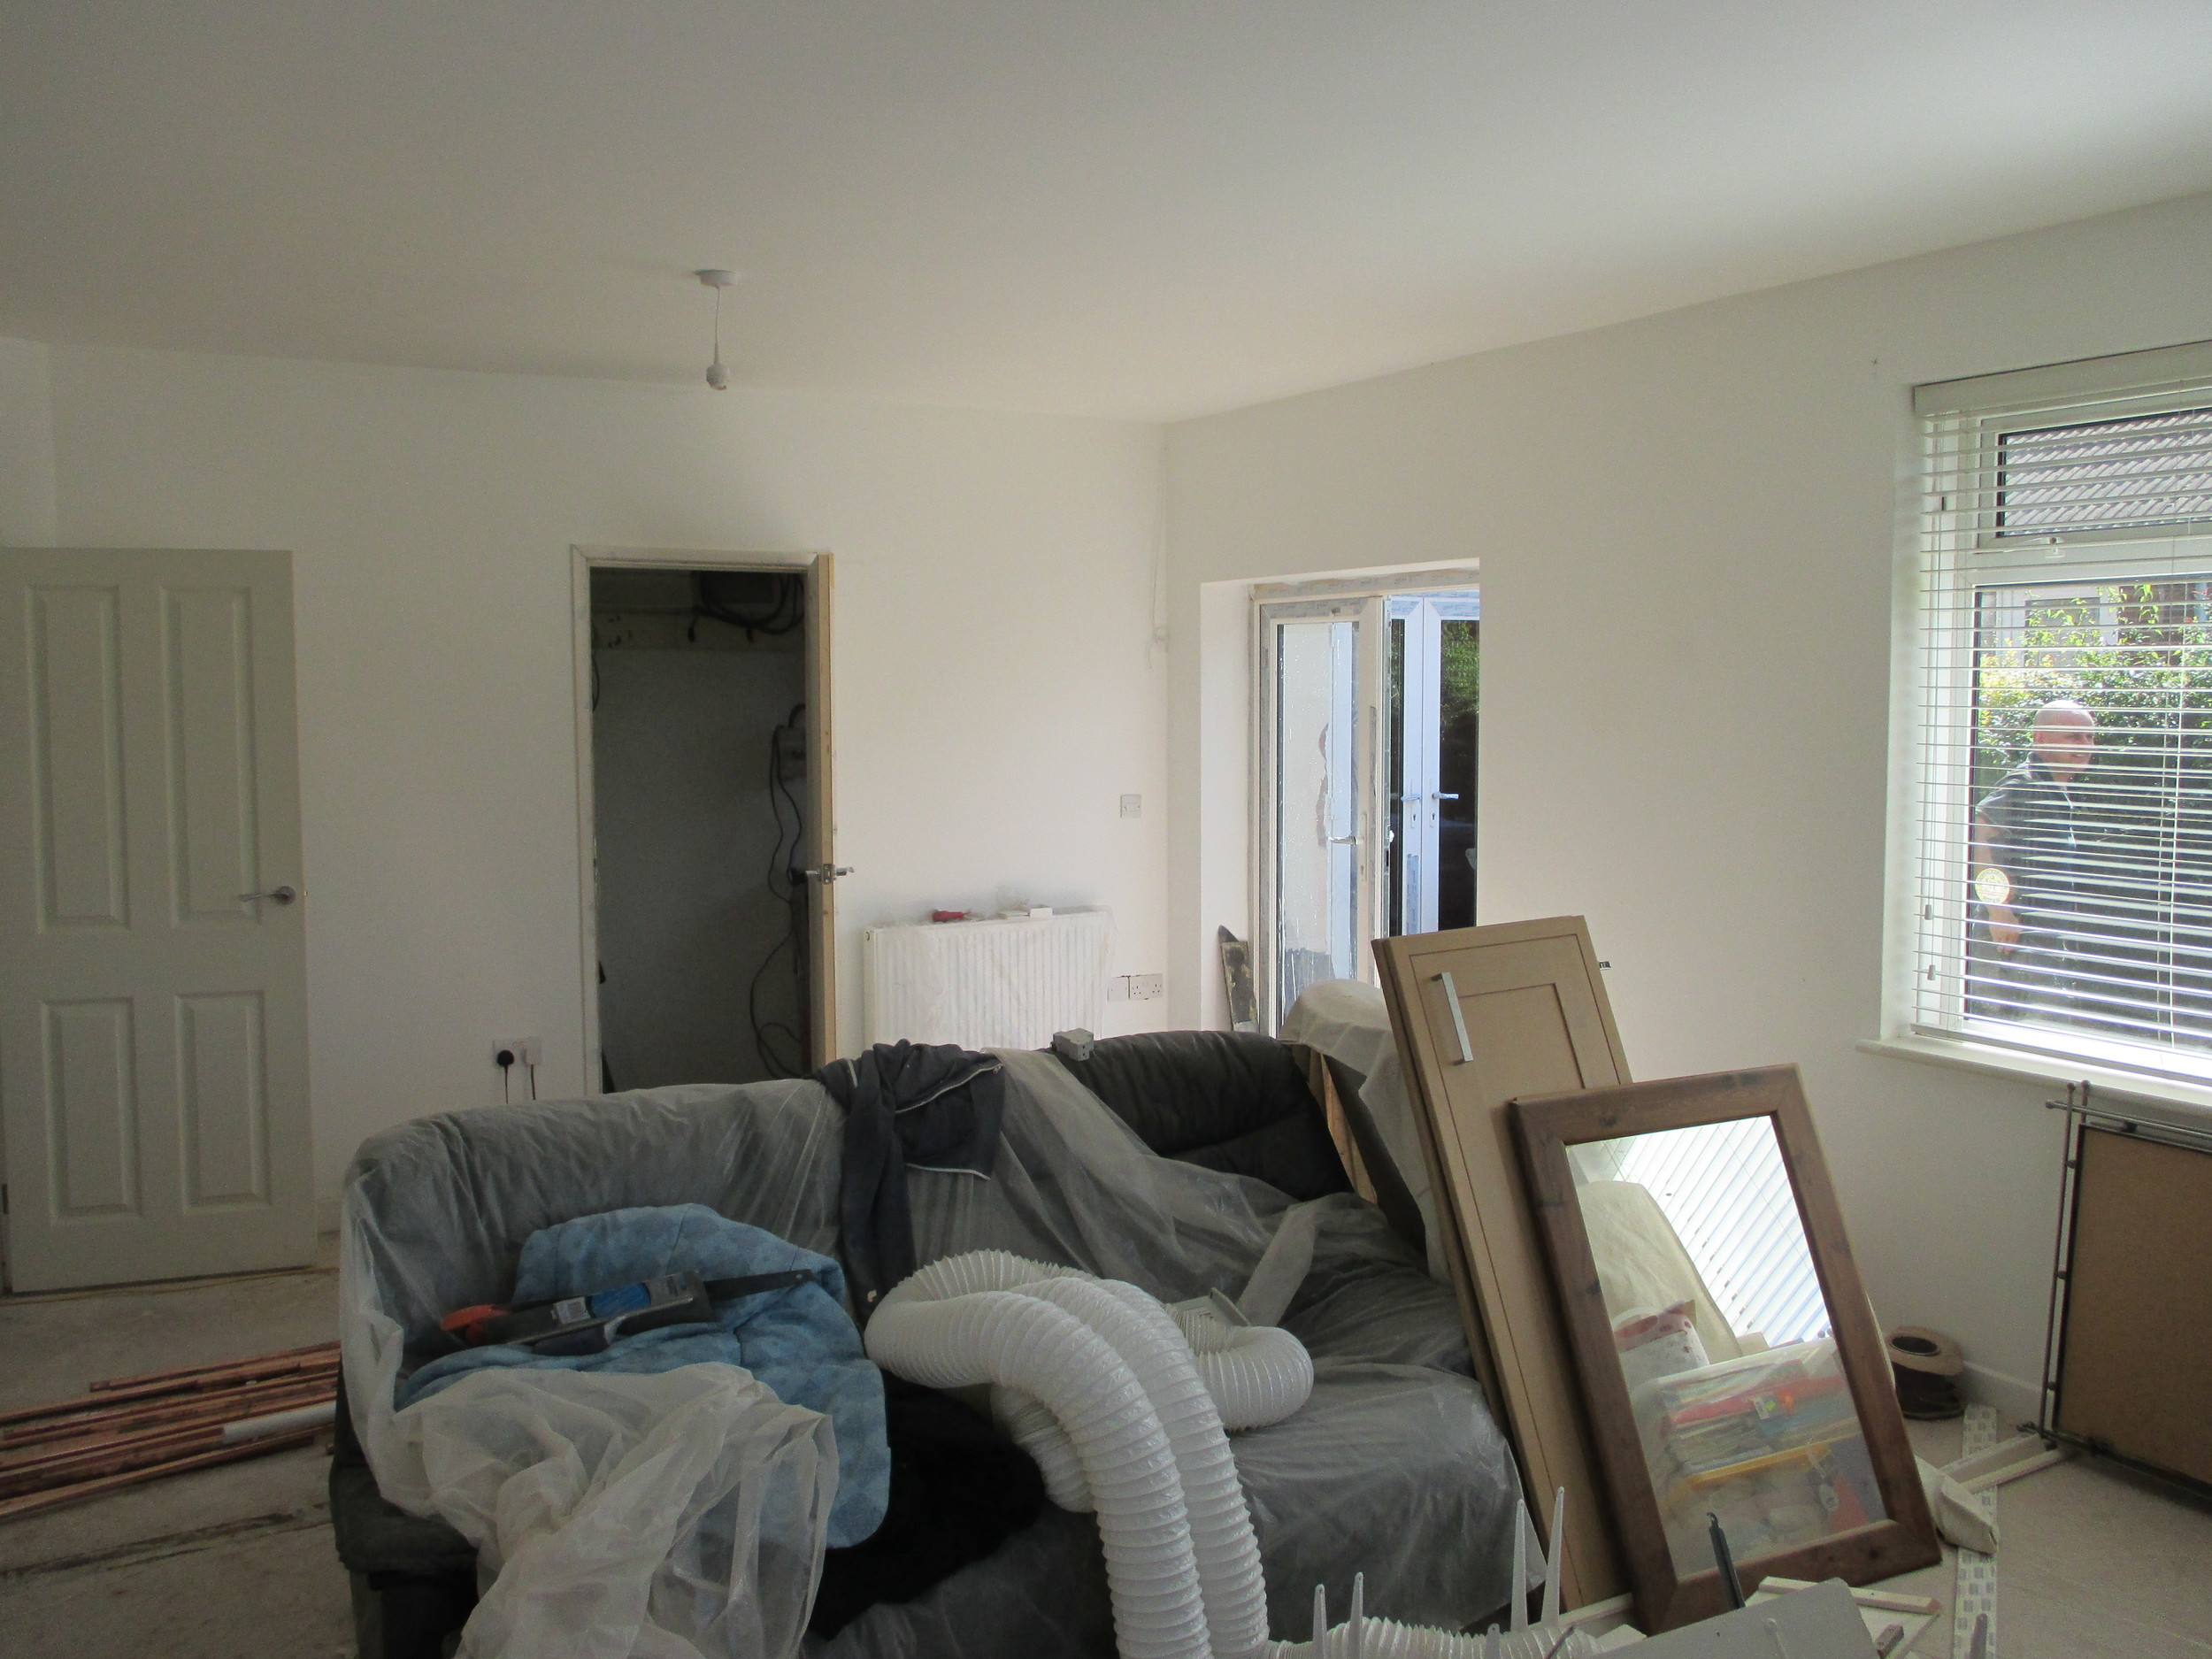 Conversion in Progress - Living room now incorporating the old hall space with old front door area converted into patio doors into courtyard garden.